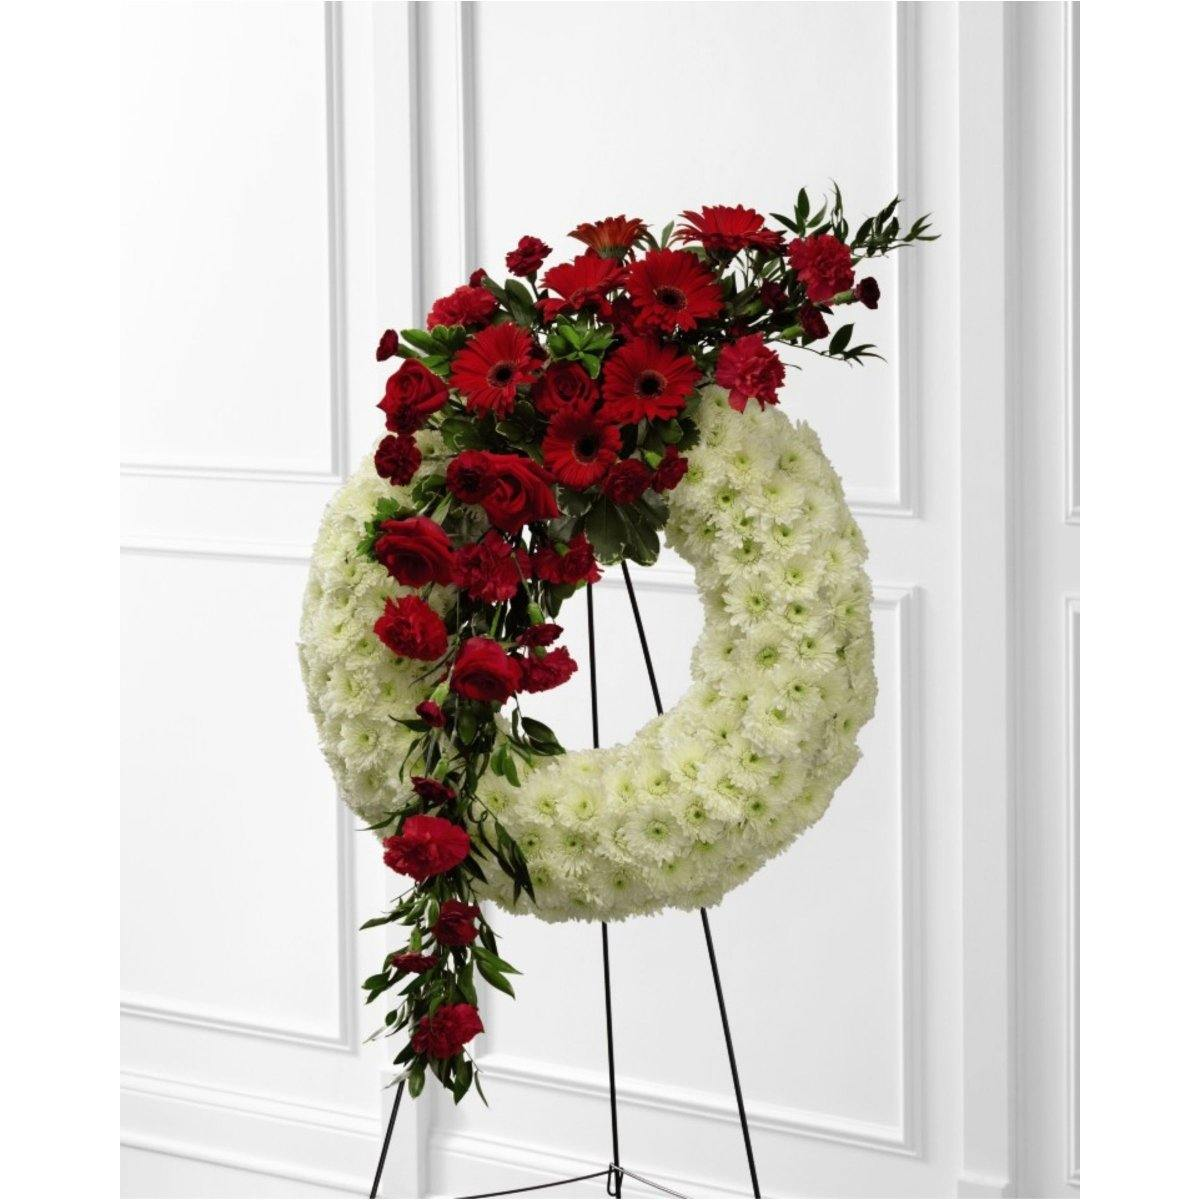 The FTD® Graceful Tribute Wreath - Shalimar Flower Shop